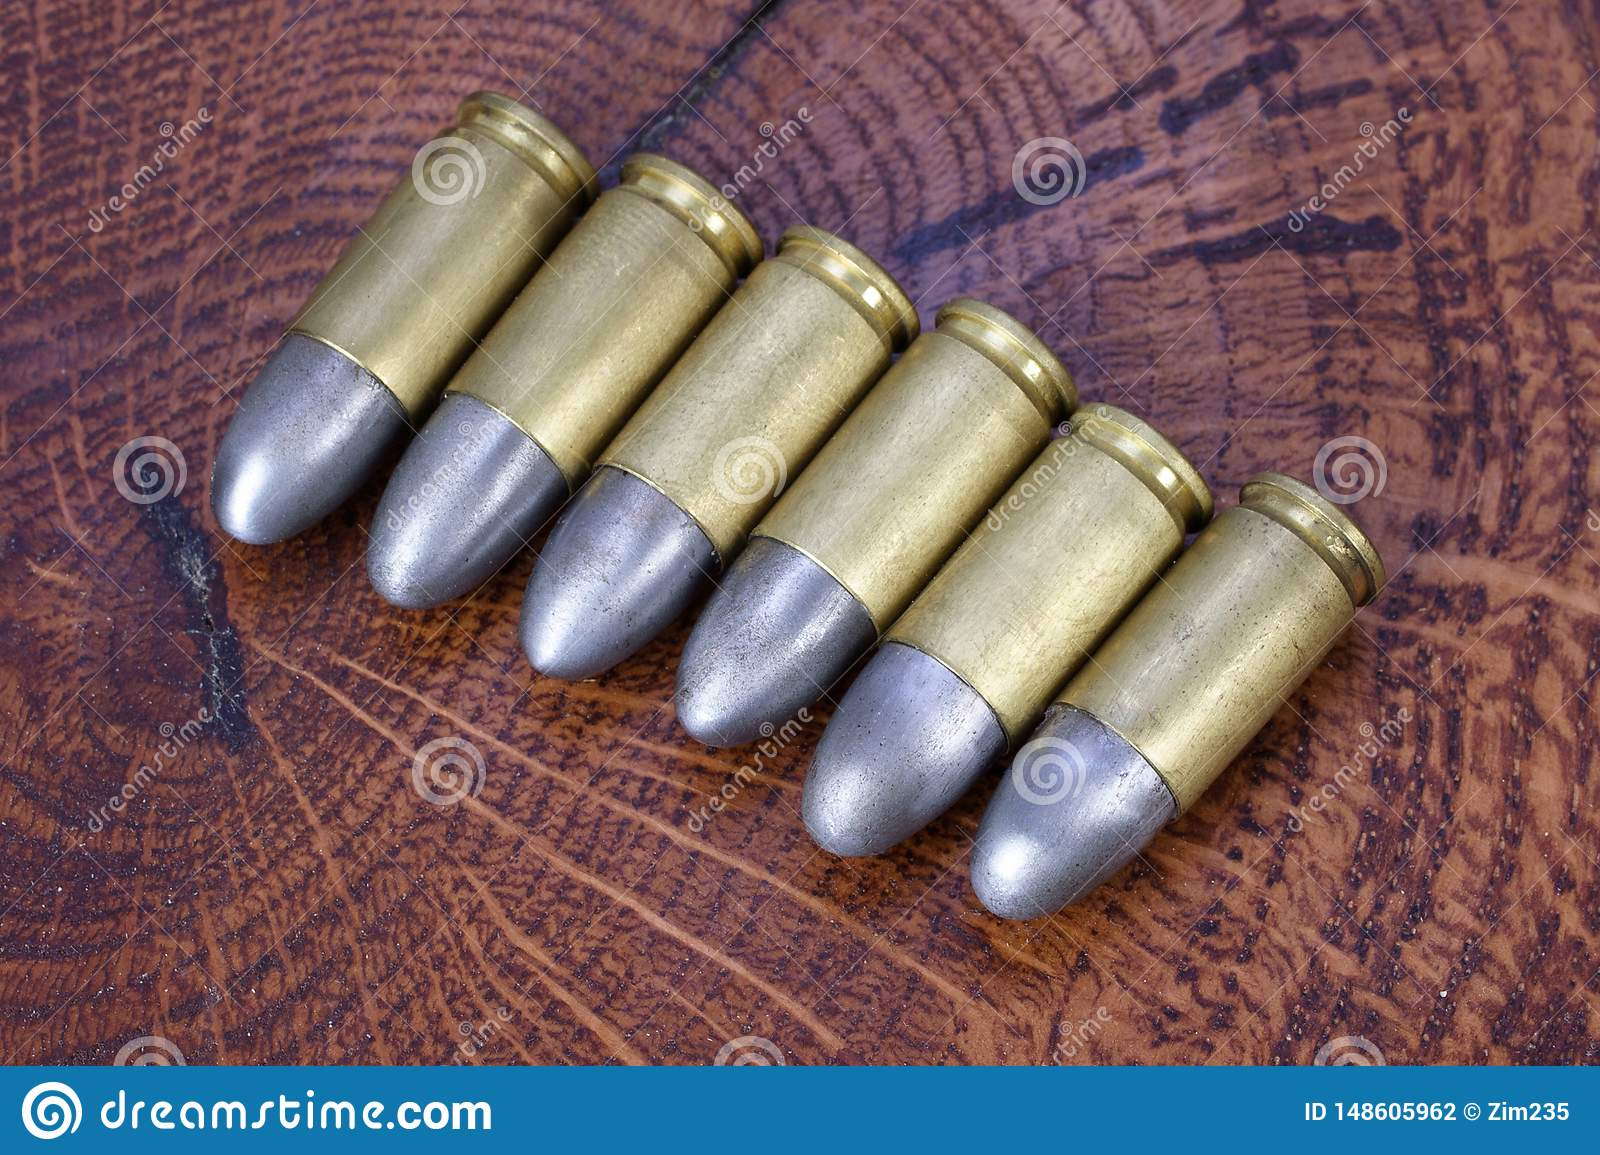 9x19mm Parabellum A Firearms Cartridges That Was Designed By